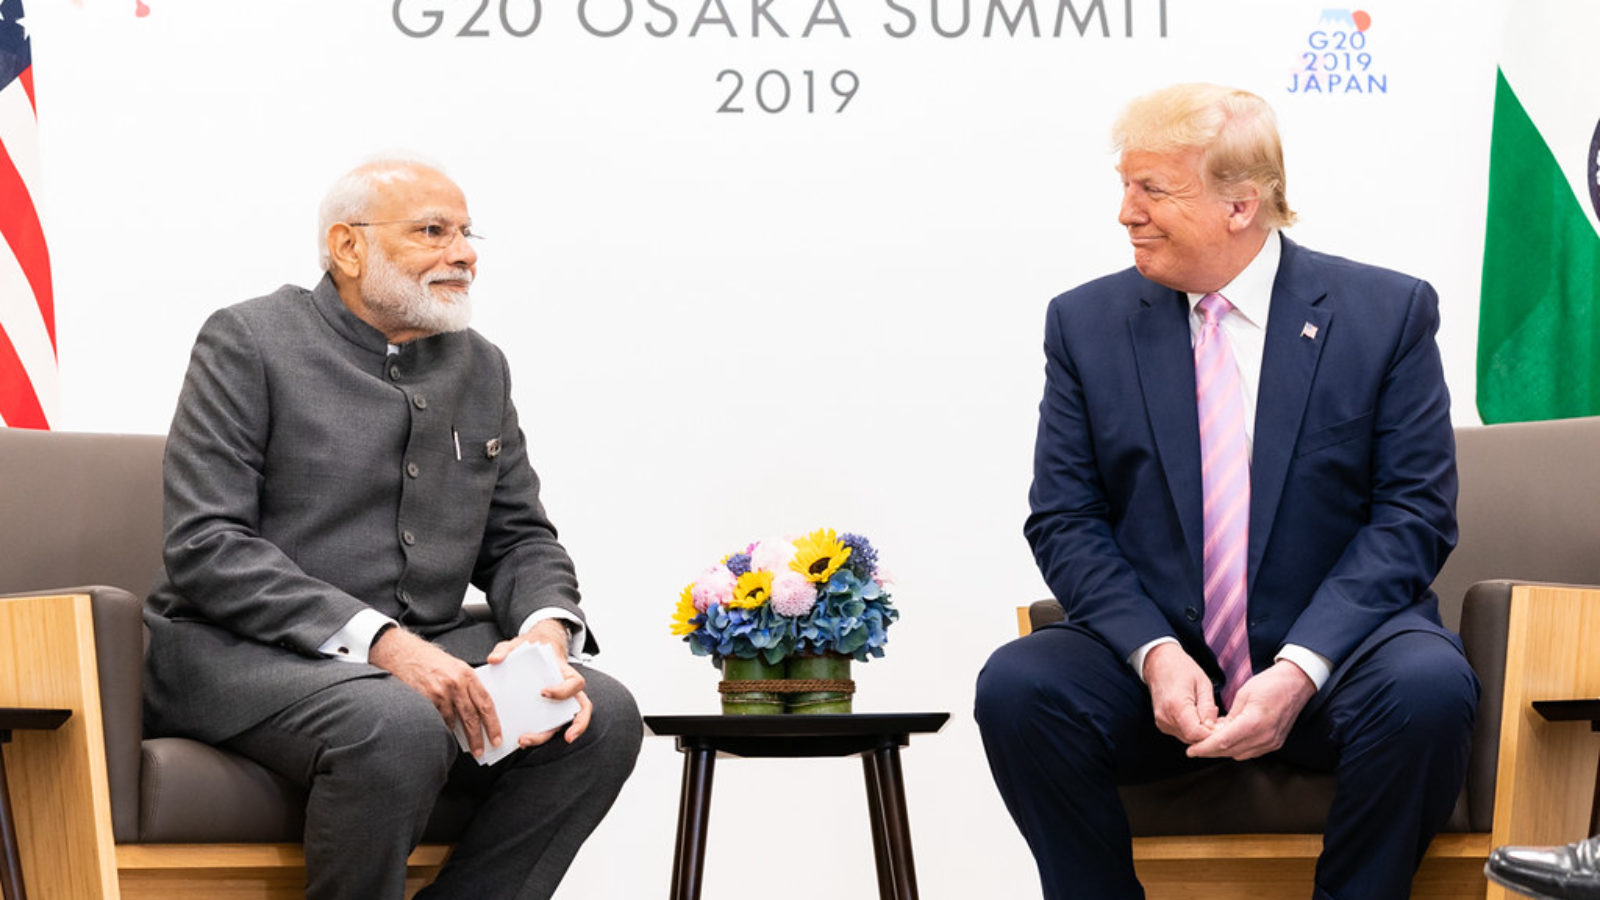 U.S. President Donald Trump and Indian Prime Minister Narendra Modi shake hands at the 2019 G20 Conference in Osaka, Japan